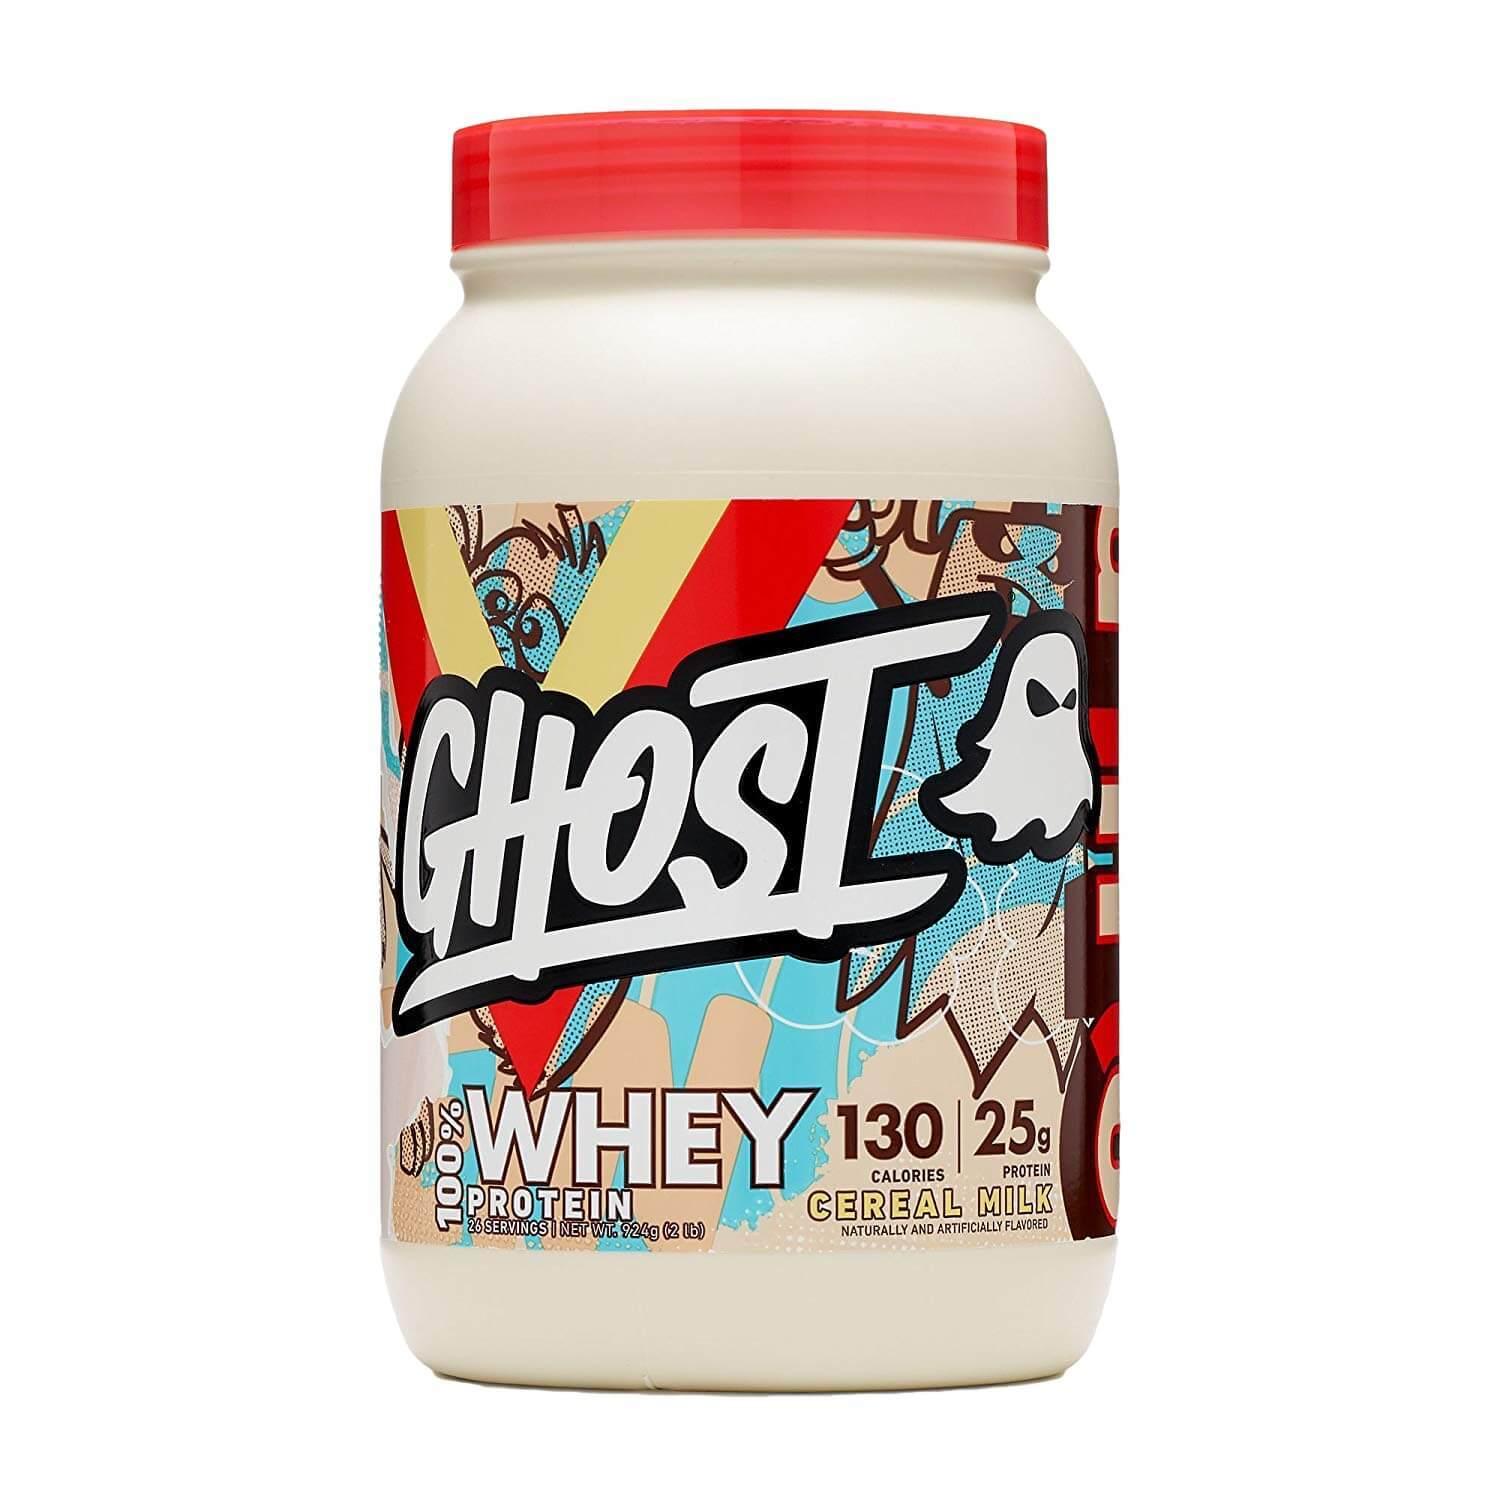 Ghost whey protein-2